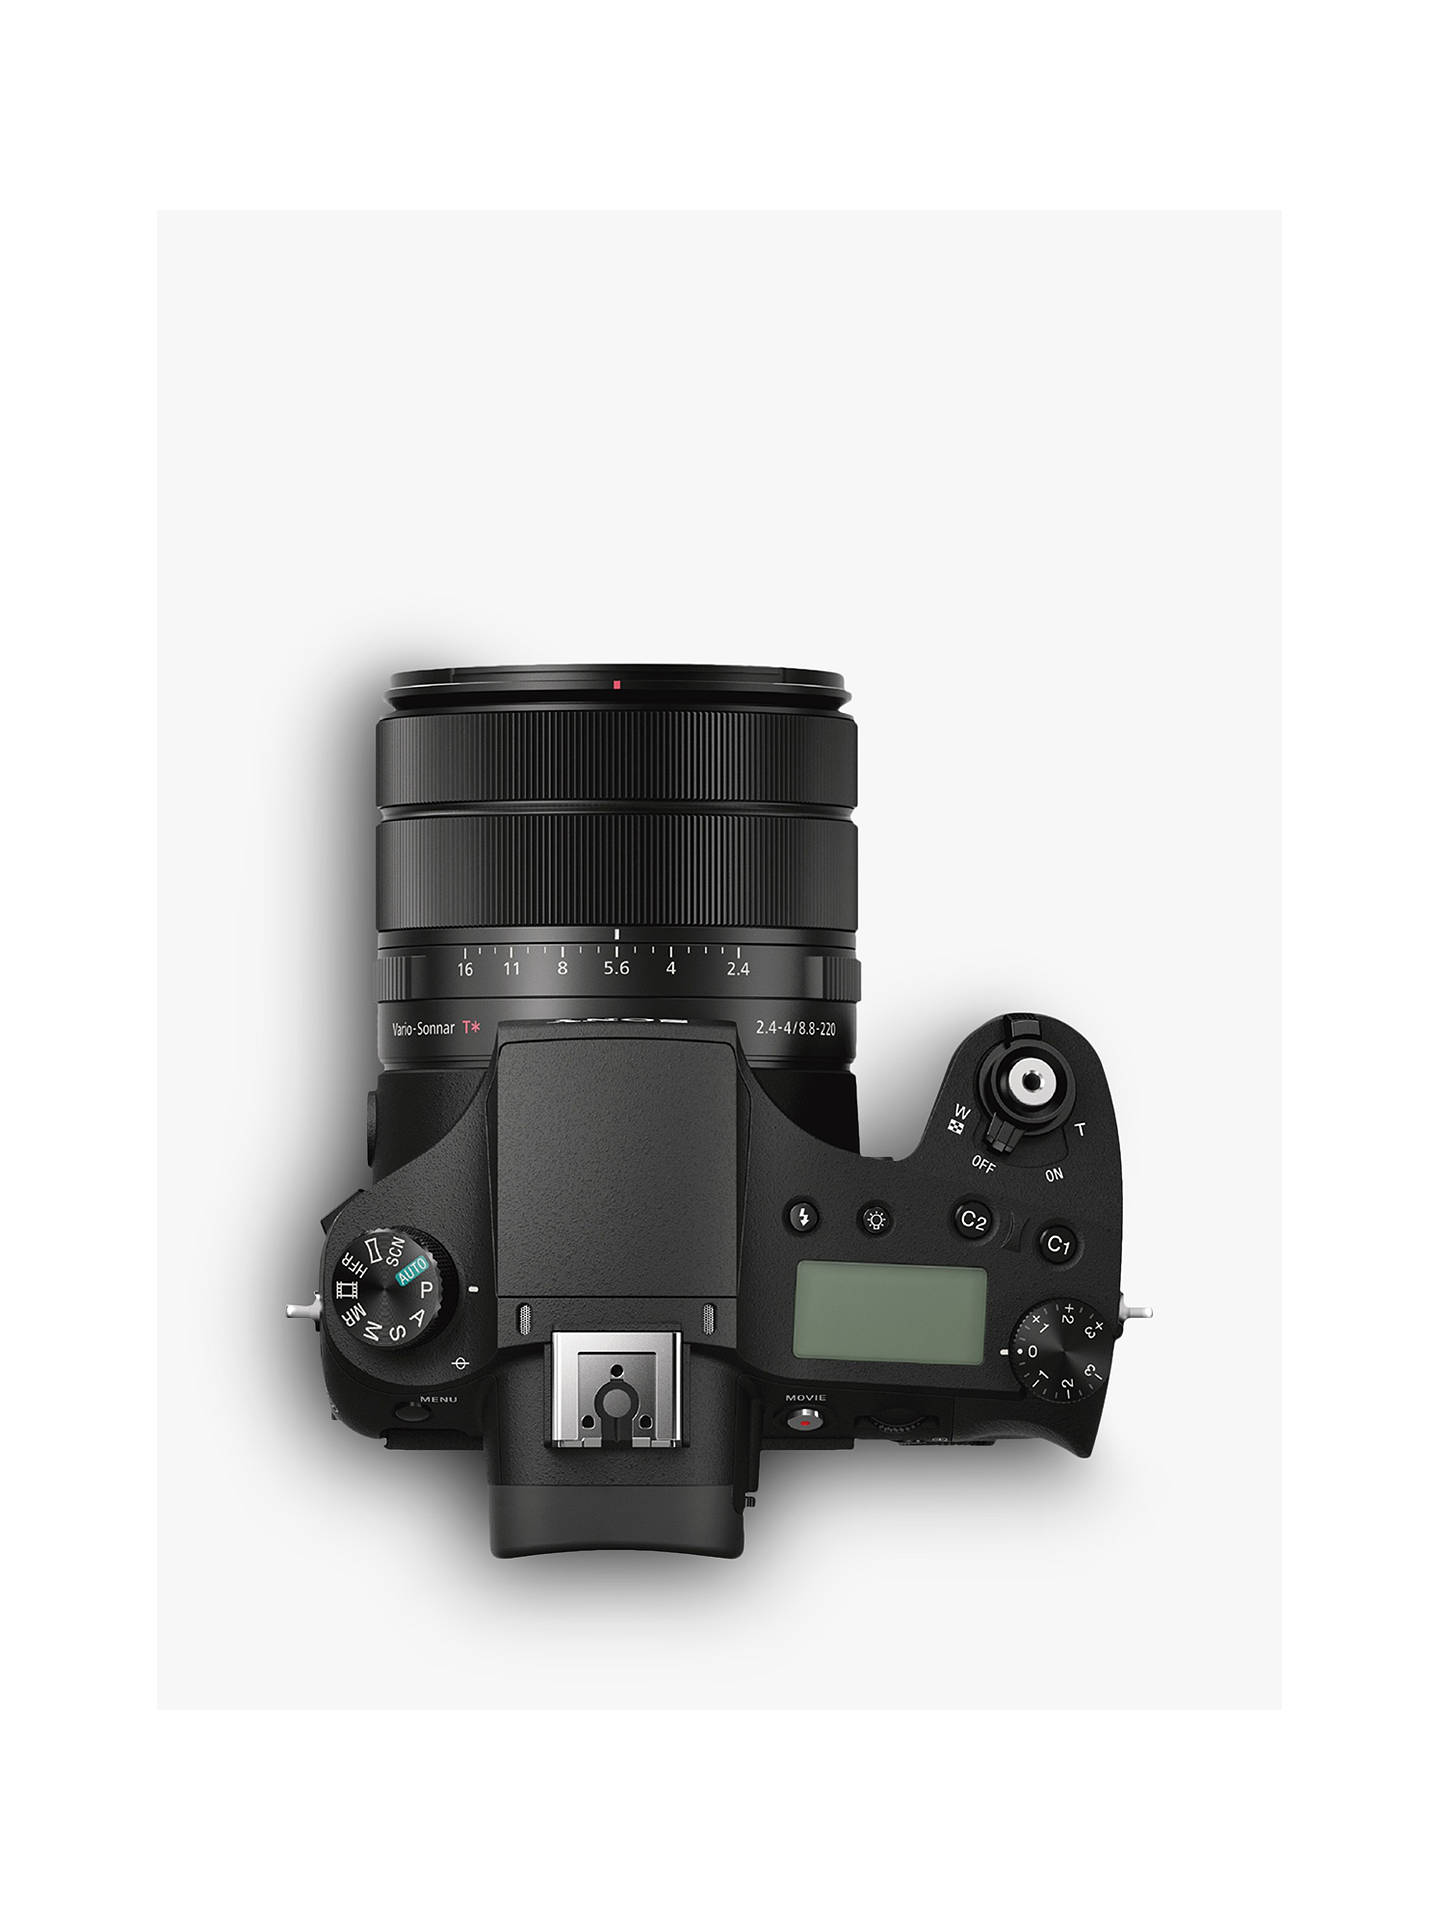 "BuySony Cyber-Shot DSC-RX10 III Bridge Camera, 4K Ultra HD, 20.1MP, 25x Optical Zoom, Wi-Fi, NFC, EVF, 3"" LCD Vari-Angle Screen Online at johnlewis.com"